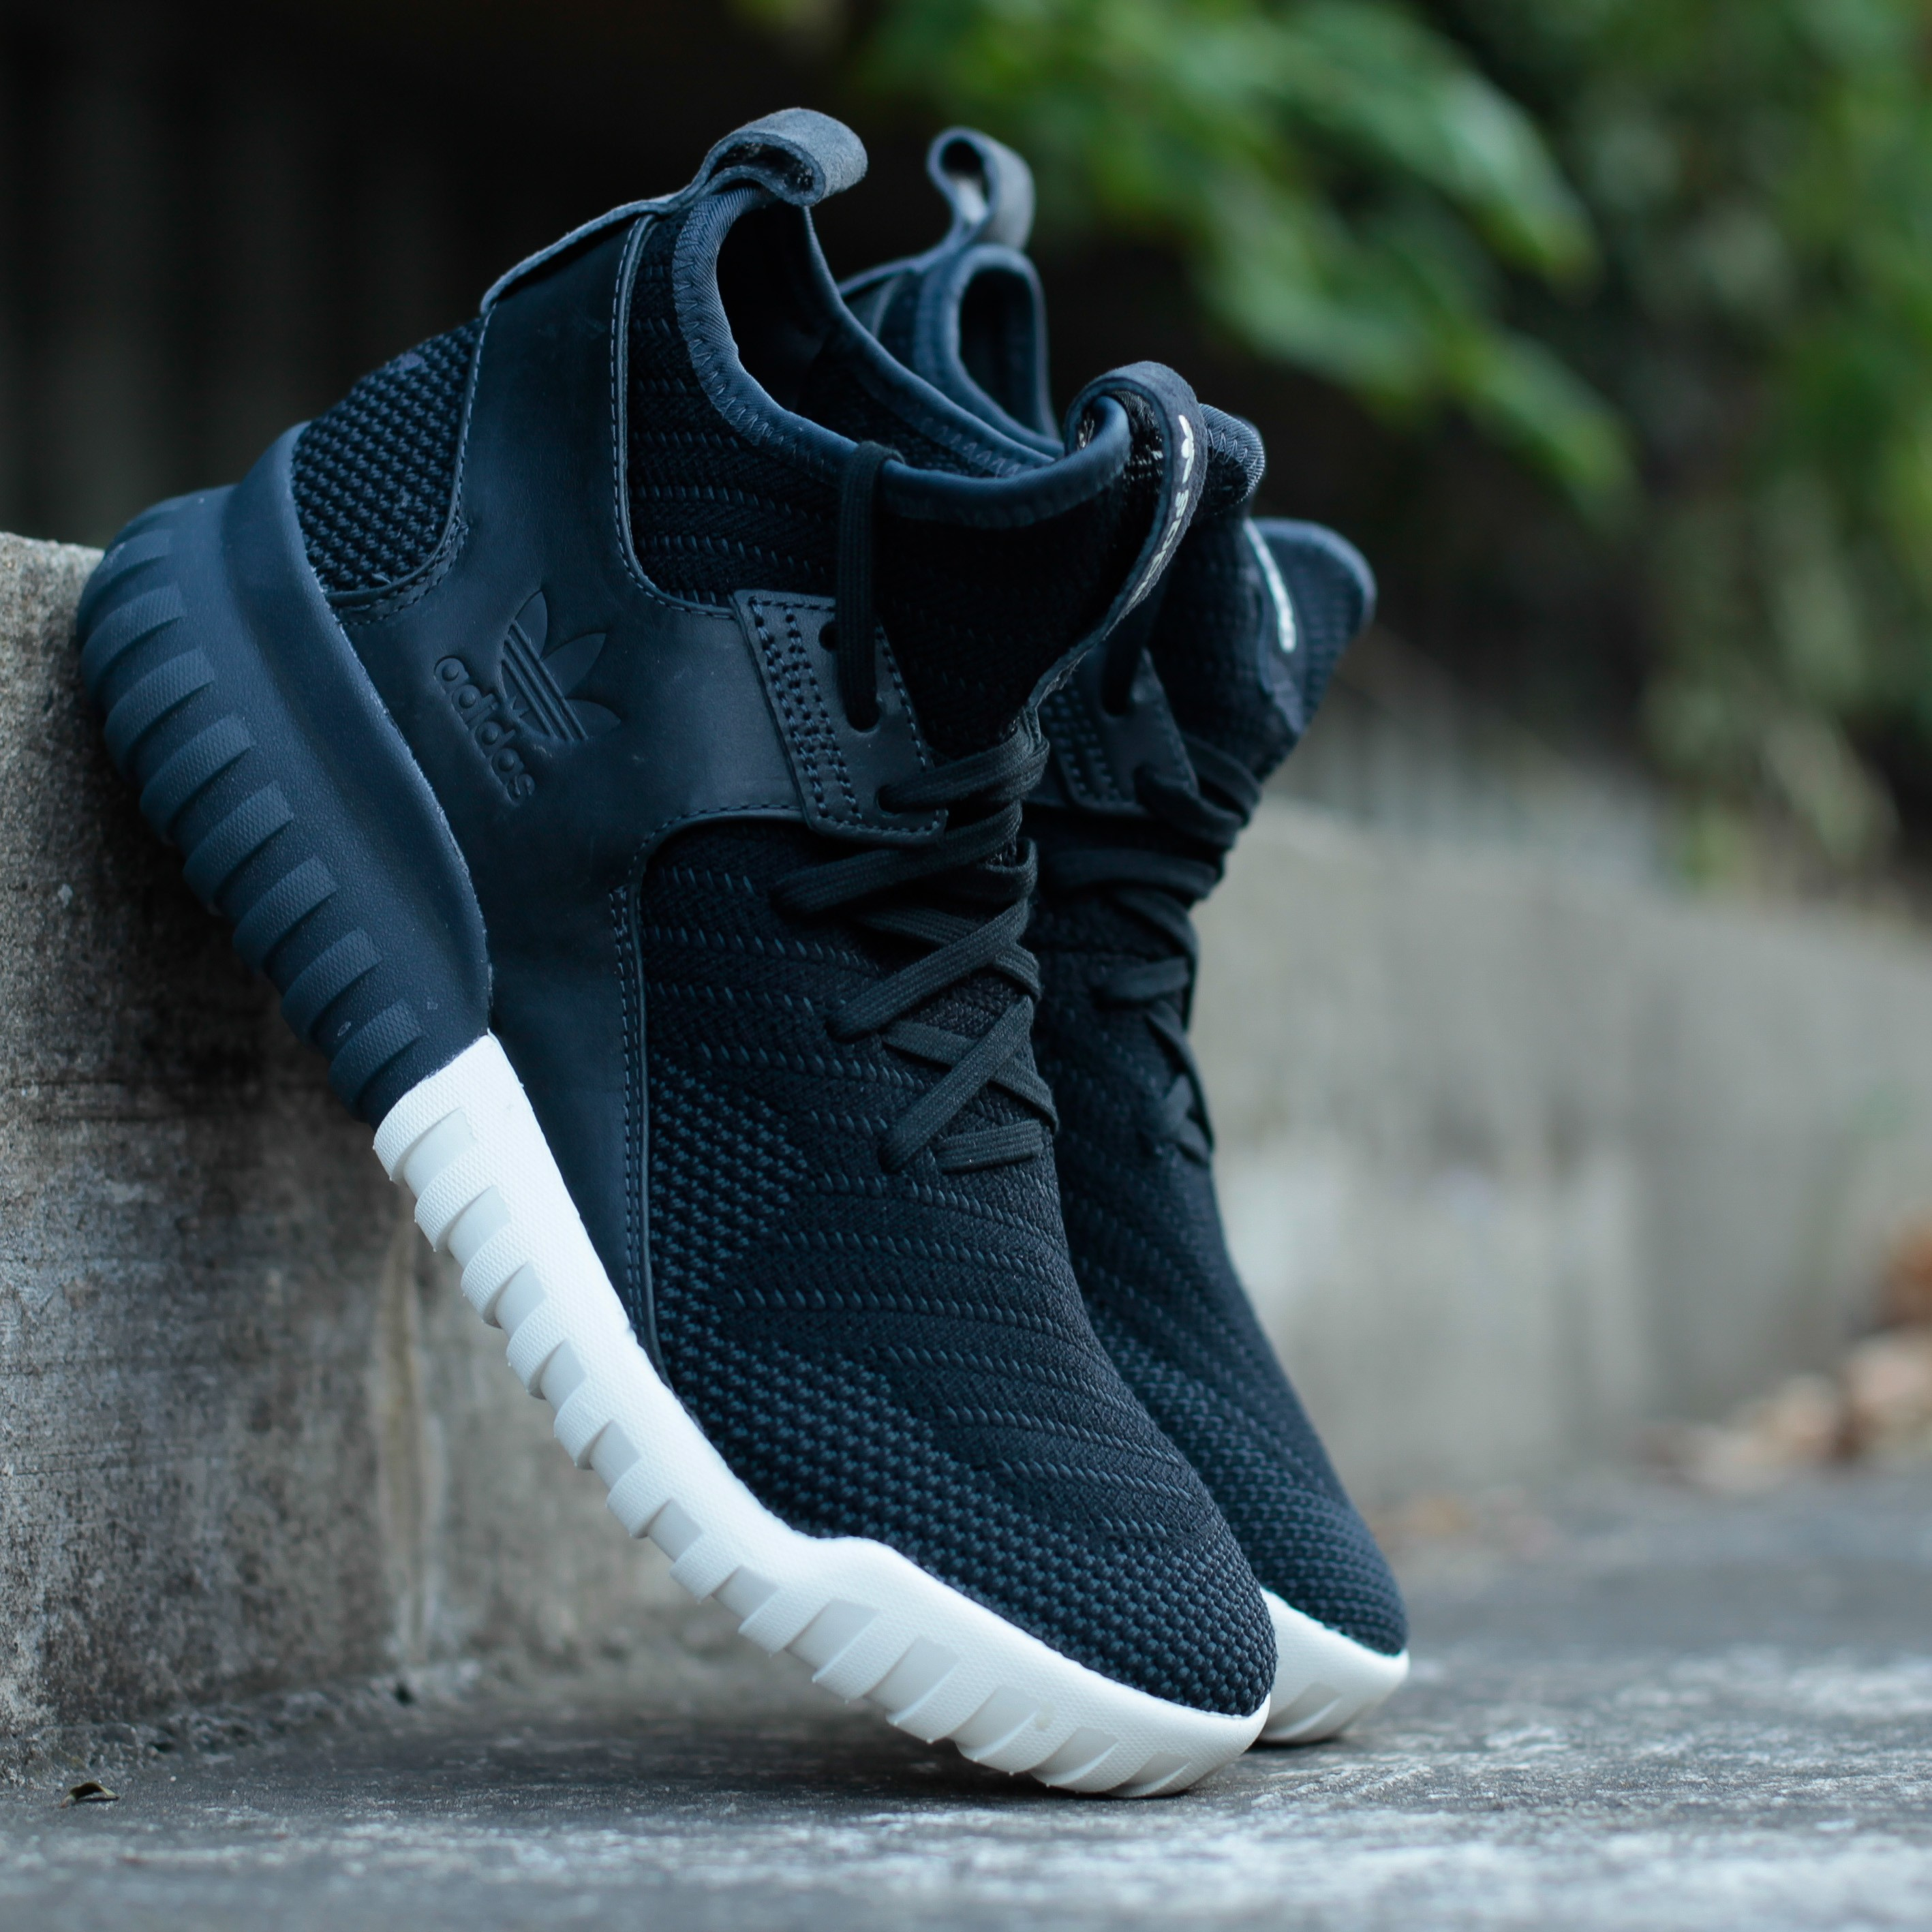 finest selection 29863 06473 discount code for women black adidas originals tubular x 2.0 56610 2005f  d8d82  low price adidas tubular x knit 16647 1af19